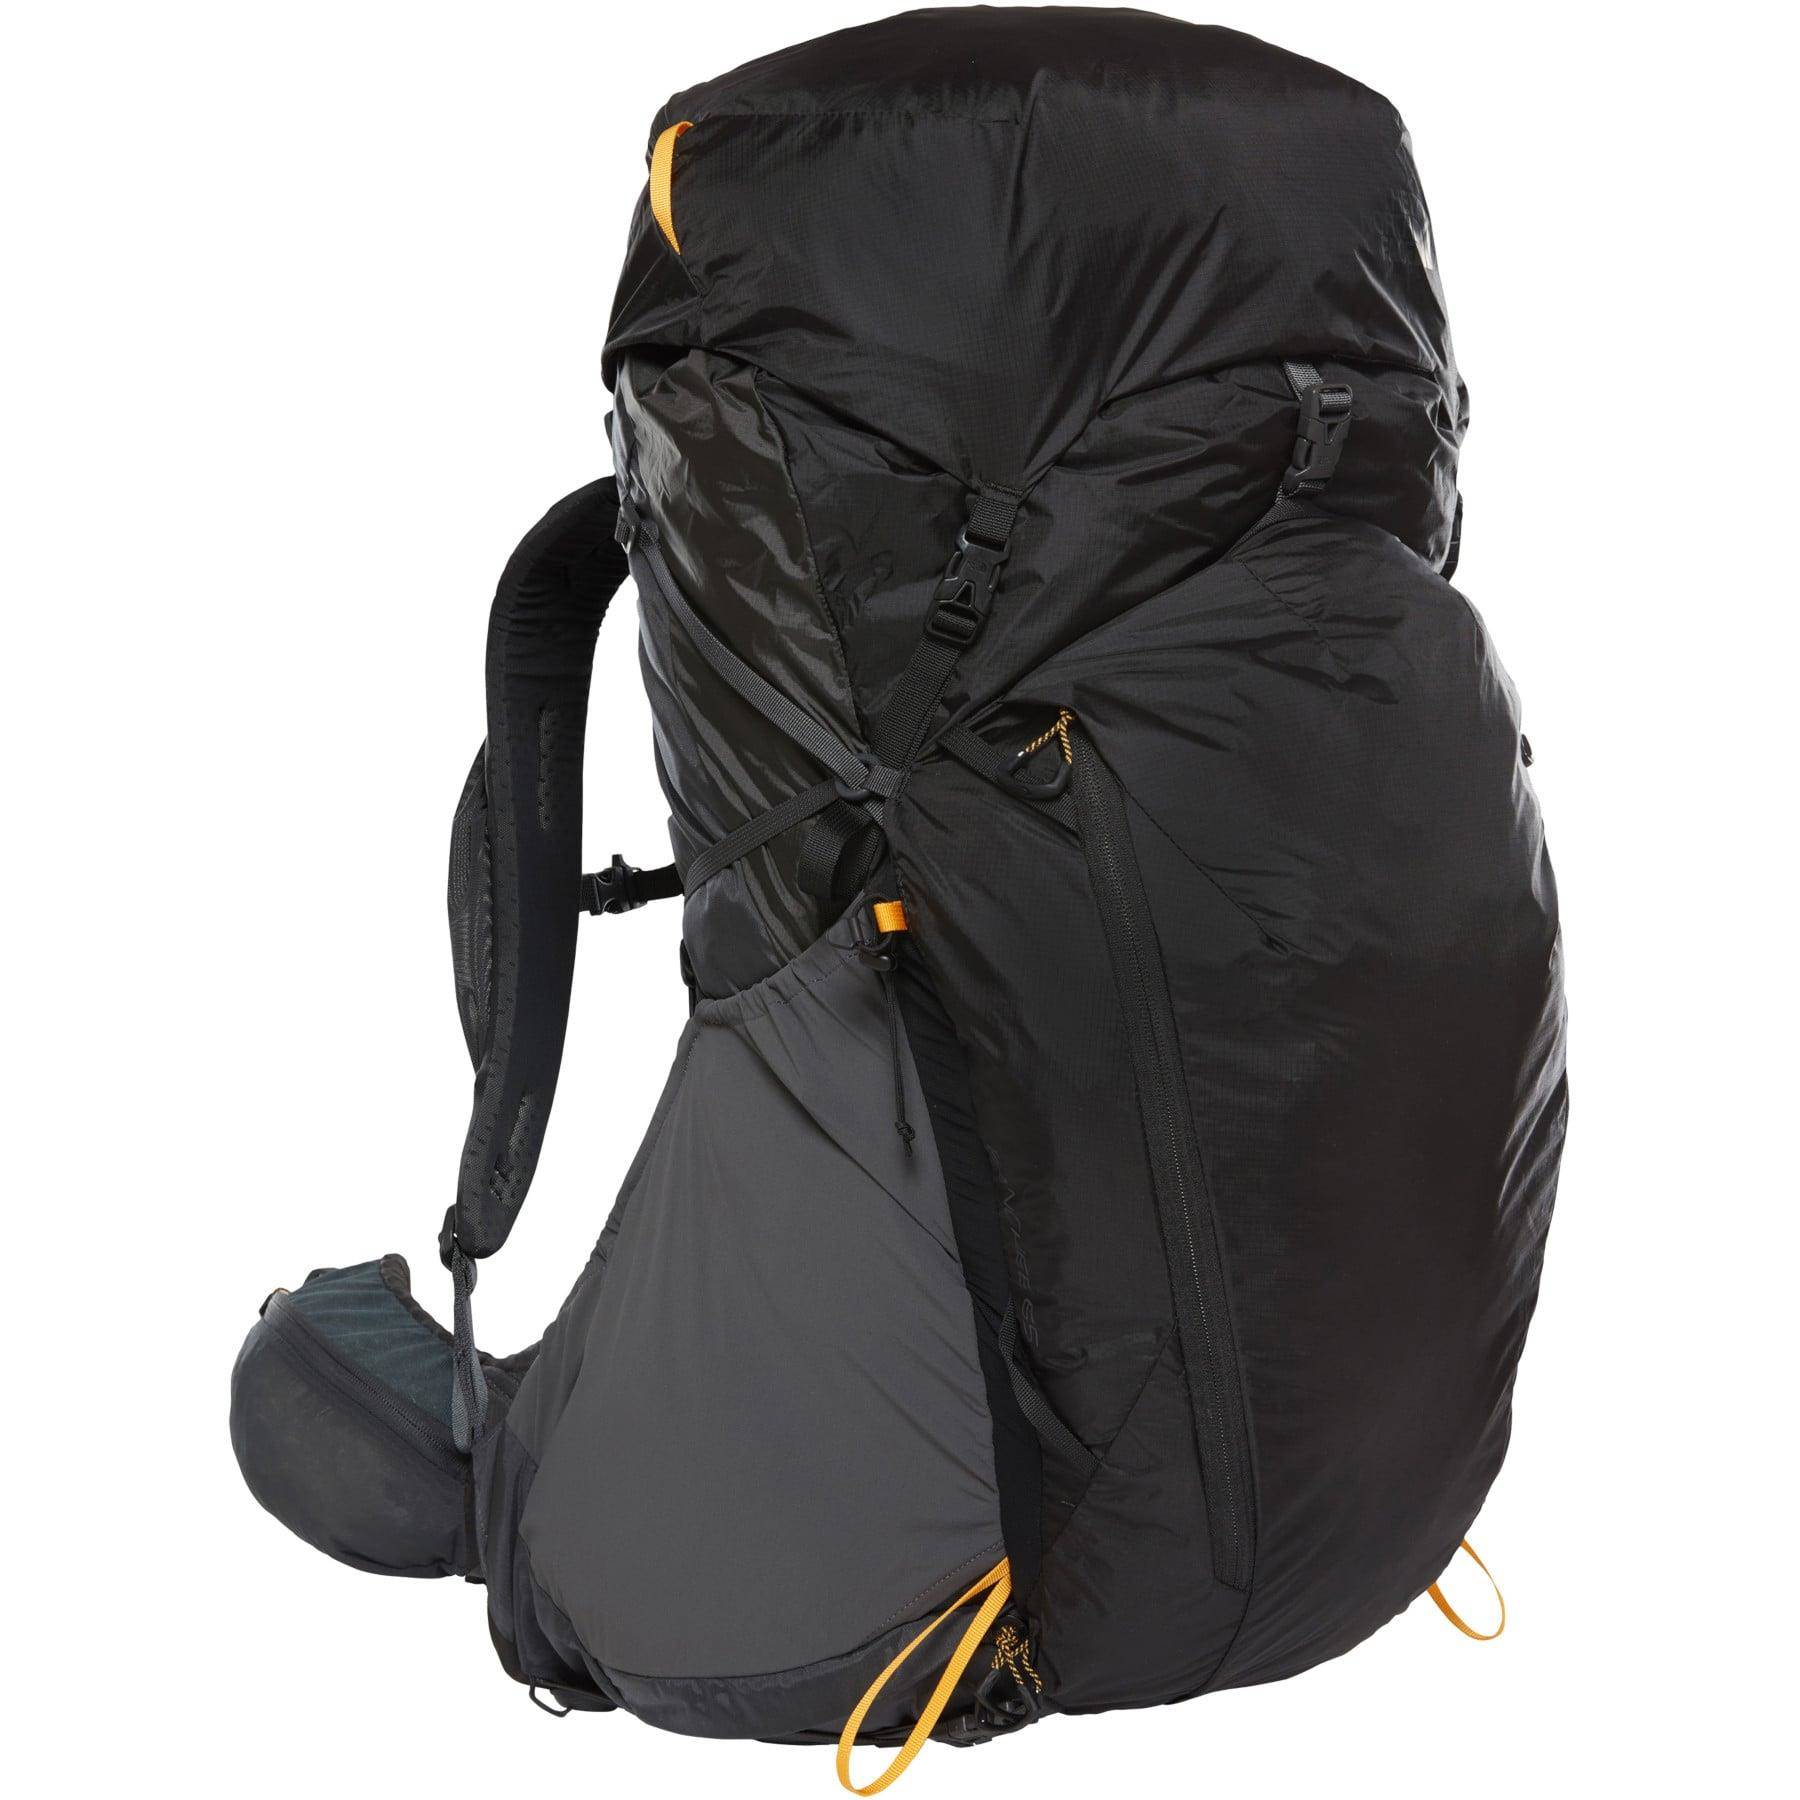 Plecak The North Face Banchee 65 T93G9TMN8